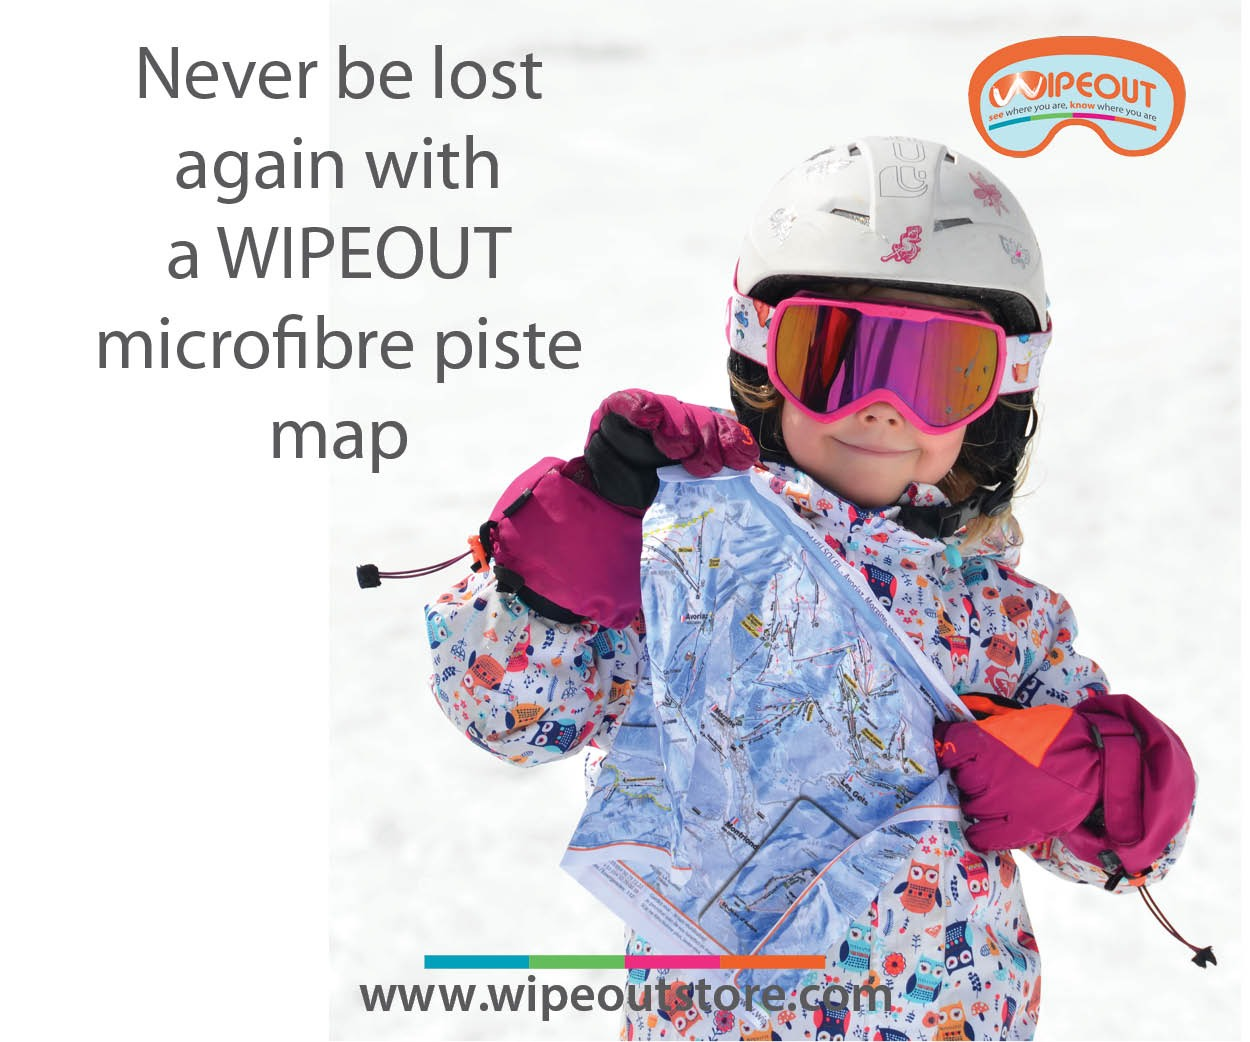 Wipe-Out maps